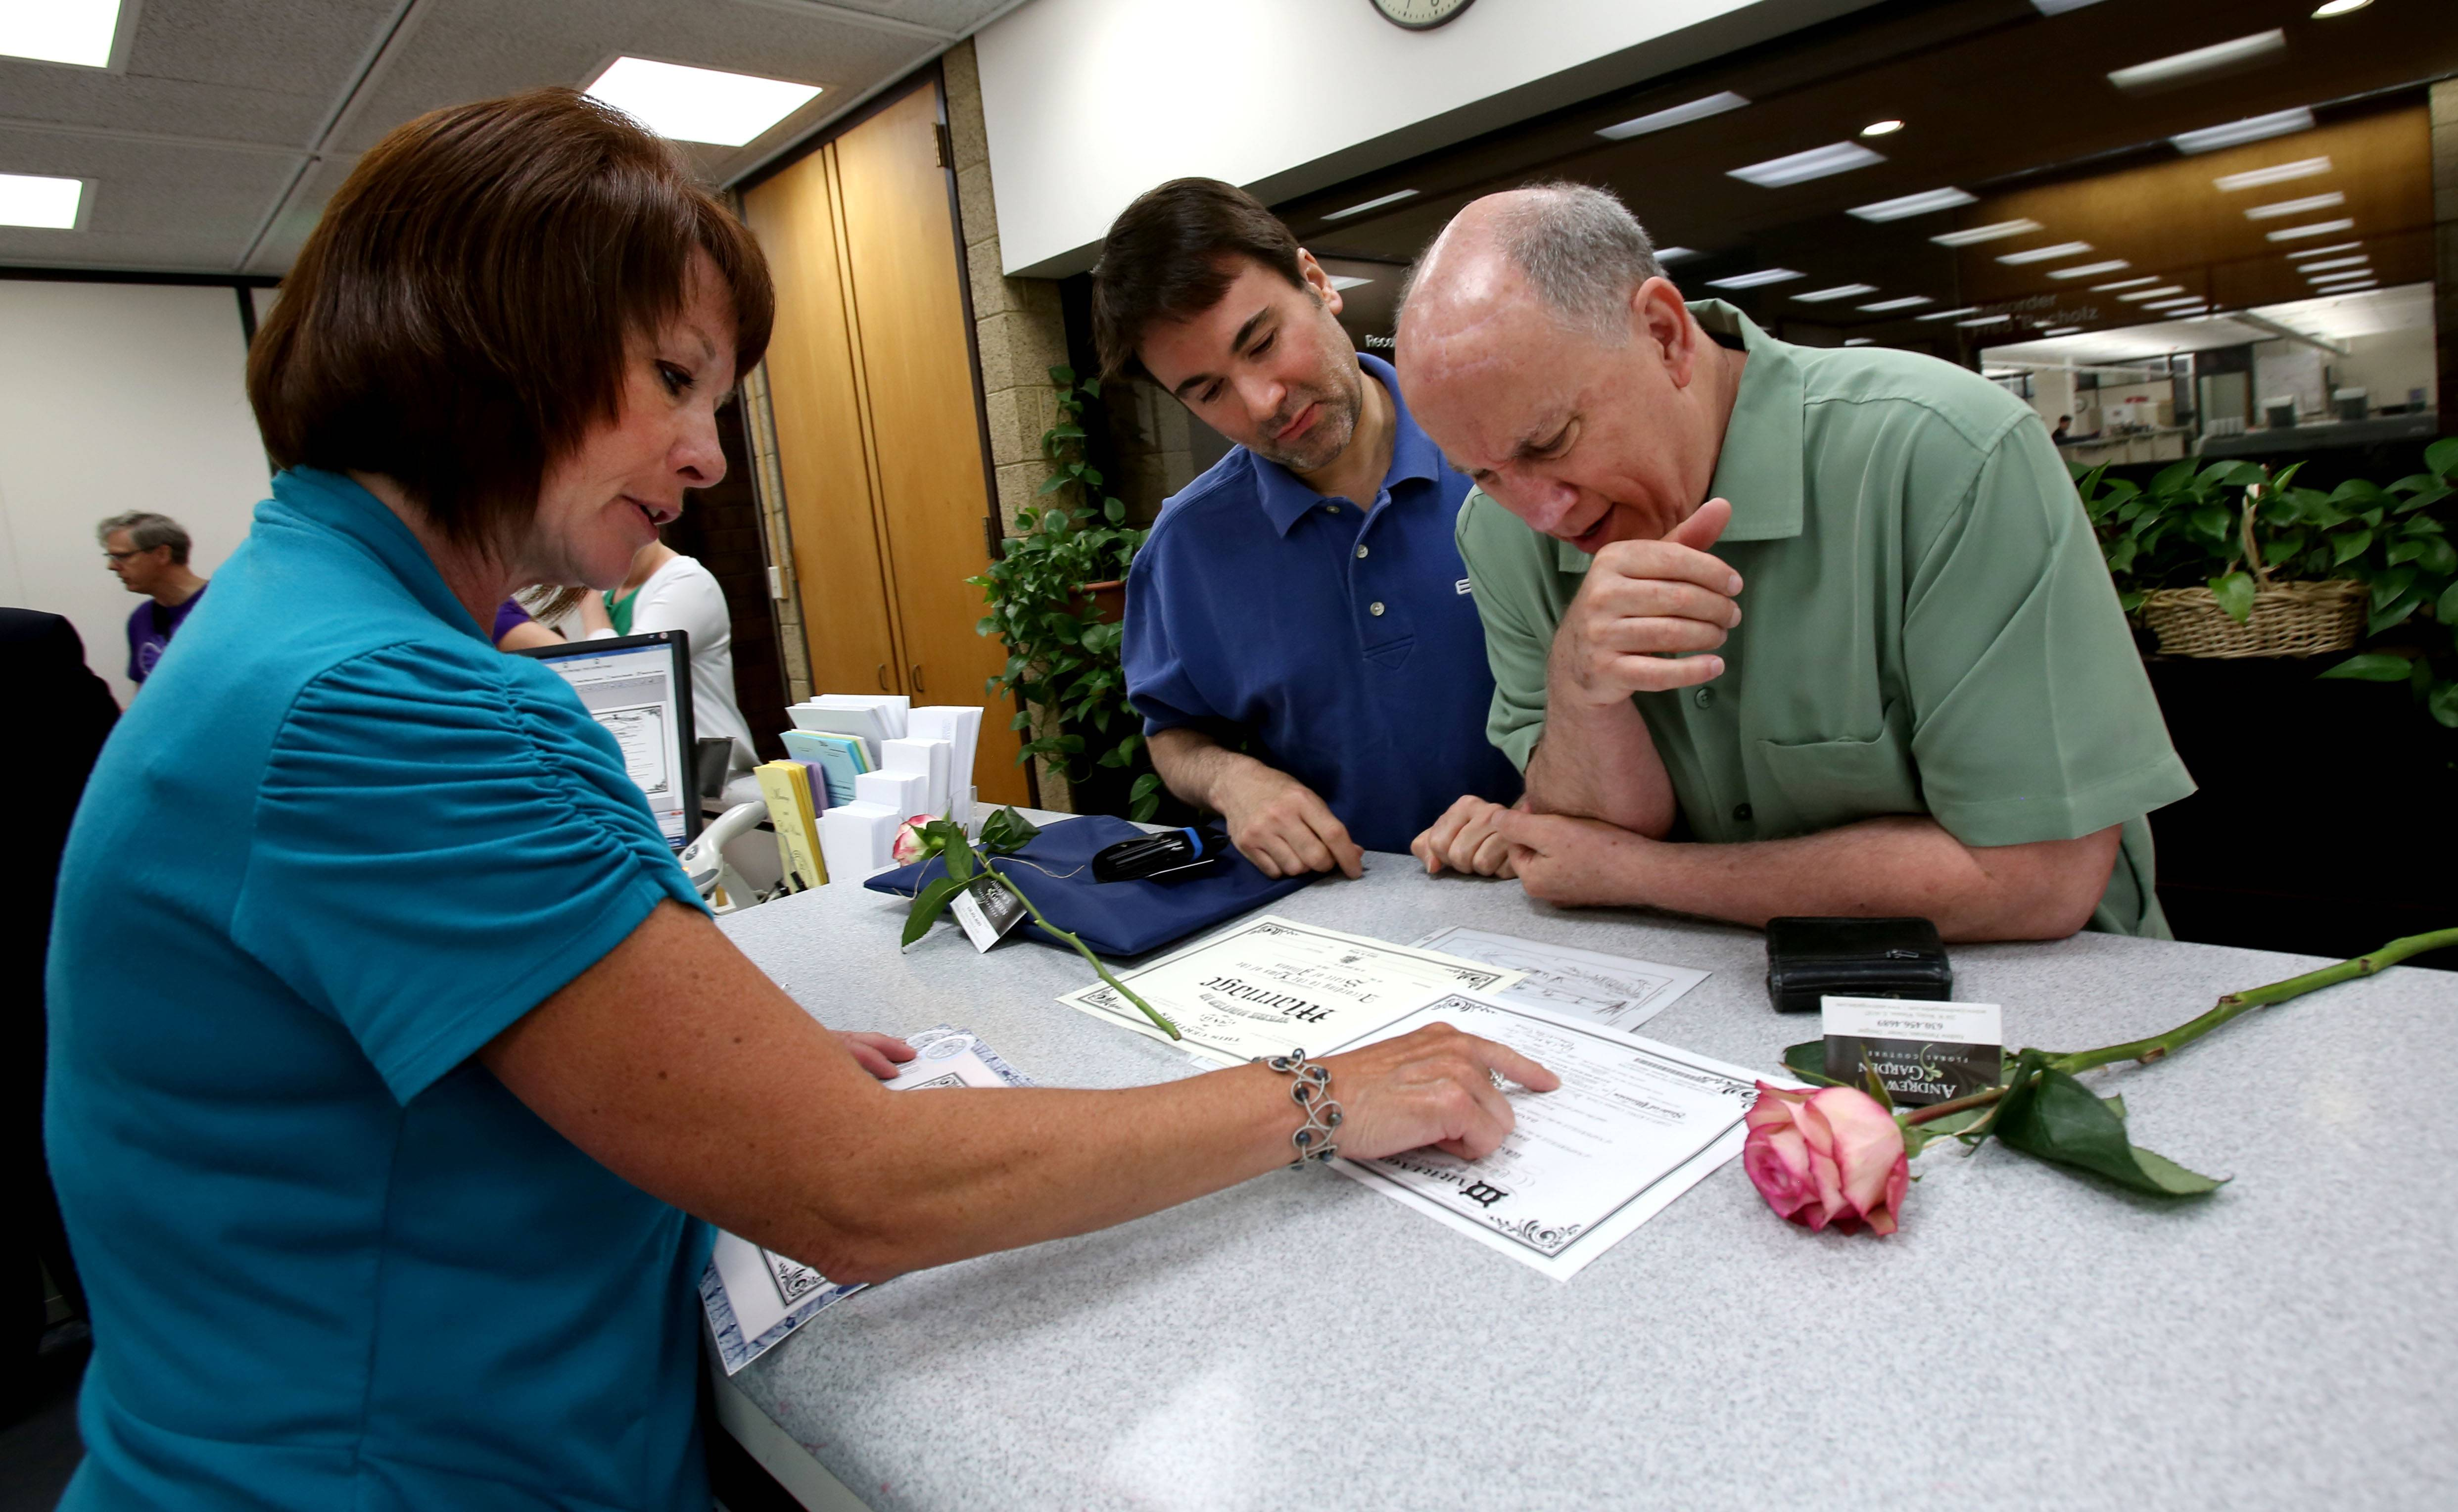 Shelley Bellock, left, deputy clerk, helps Naperville residents David Mancini-Conway, center, and Dan McGuire, right, with their marriage license Monday at the DuPage County Clerk's office in Wheaton. Same-sex marriage officially became legal in the state on Sunday.